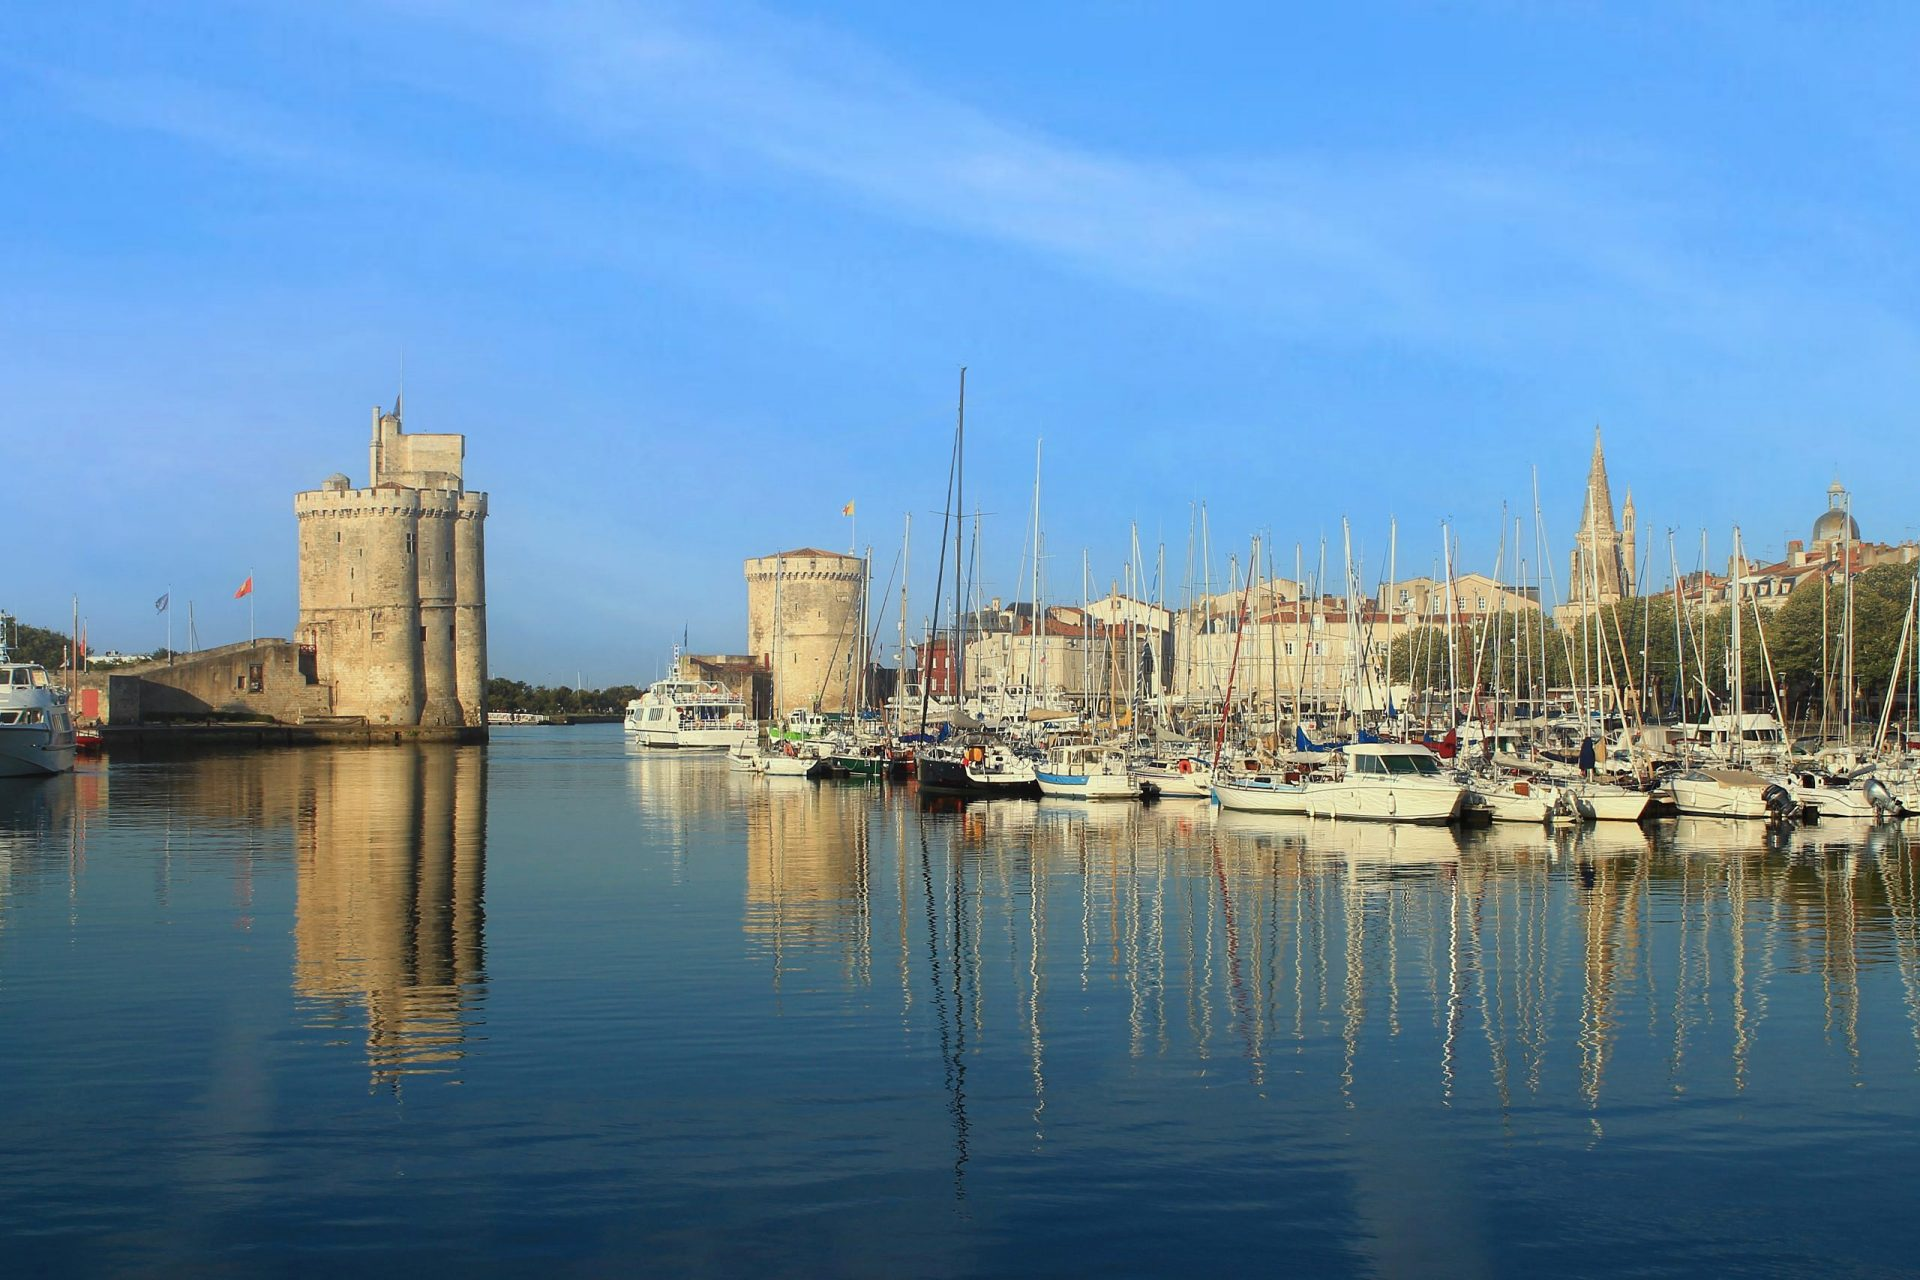 La Rochelle, the French city and seaport located on the Bay of Biscay